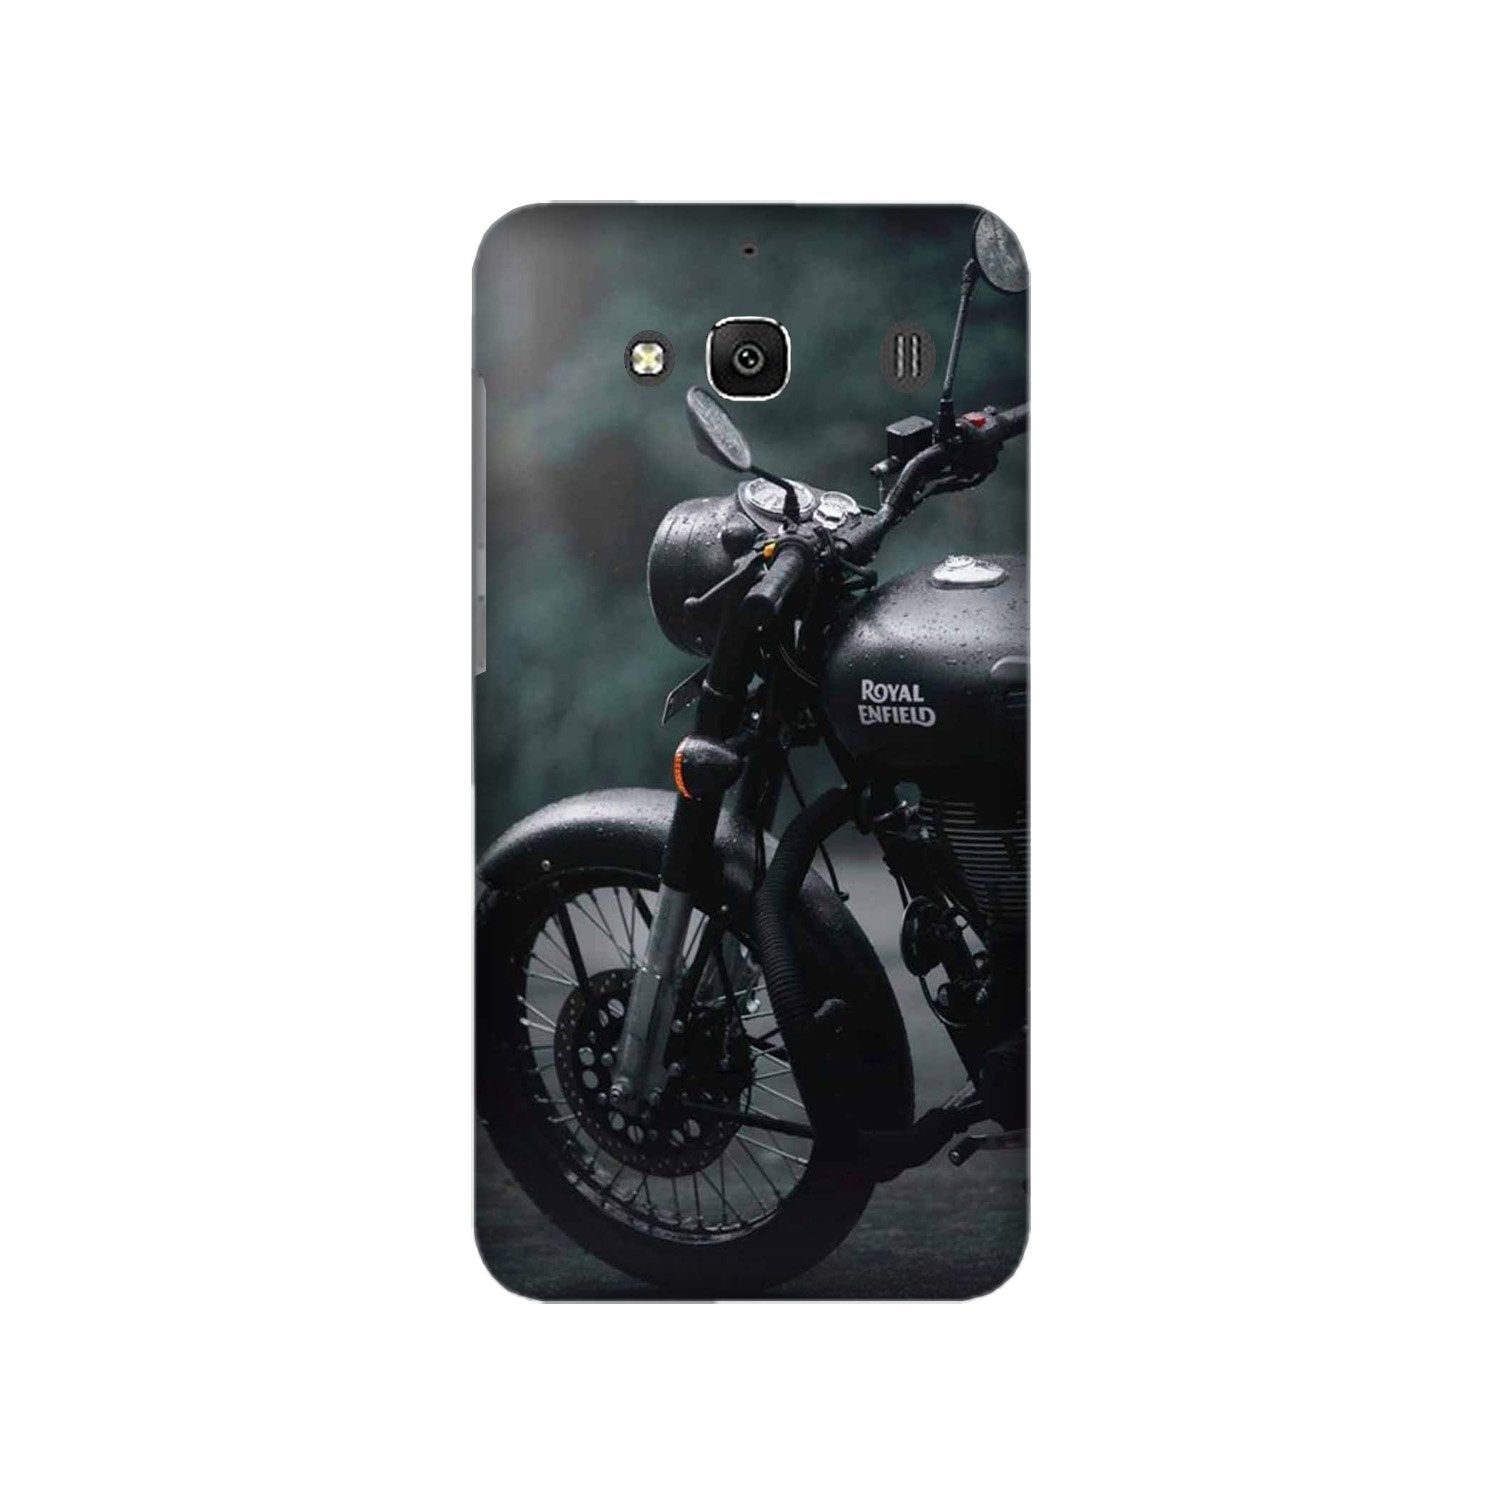 Royal Enfield Mobile Back Case for Redmi 2 Prime  (Design - 380)